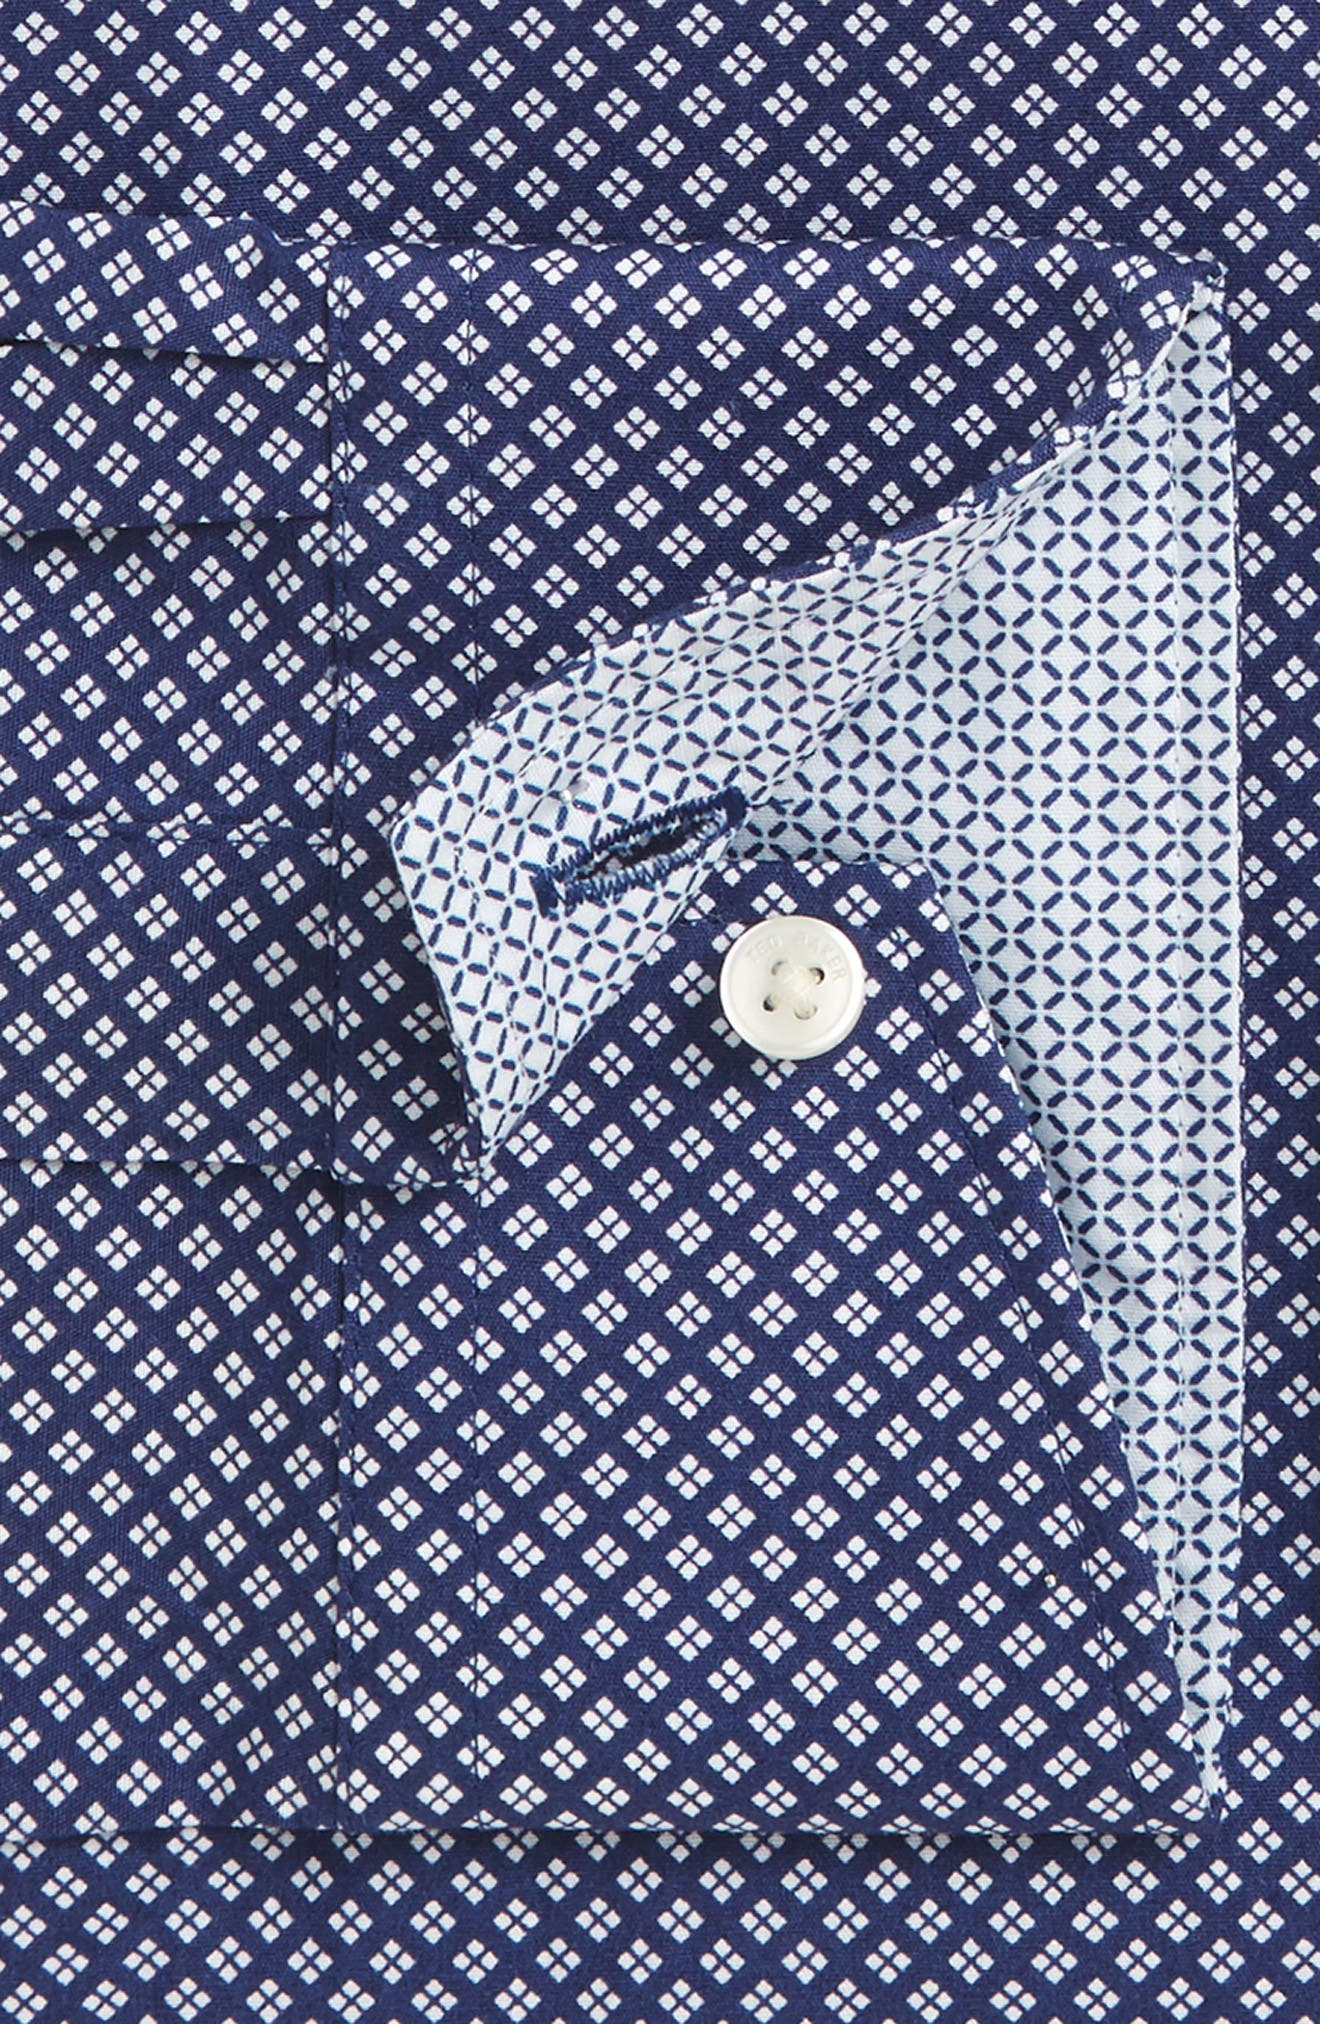 Agra Trim Fit Geometric Dress Shirt,                             Alternate thumbnail 3, color,                             410